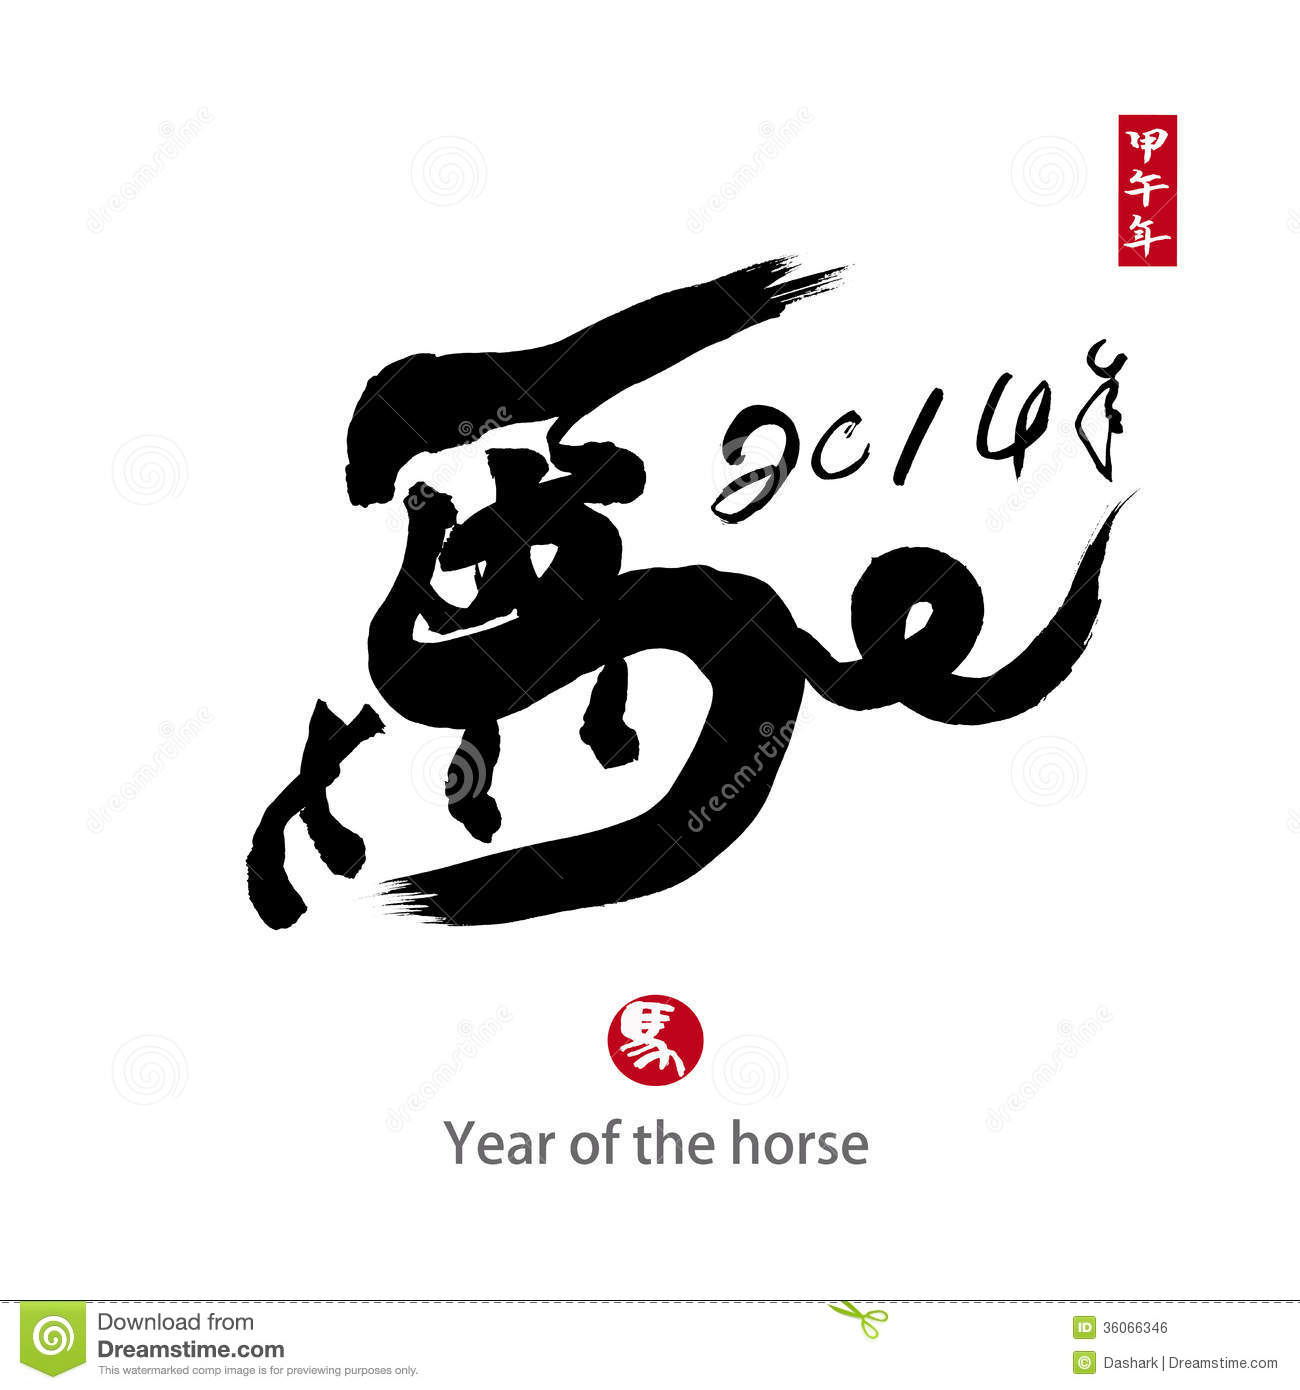 2014 Is Year Of The Horse Chinese Calligraphy Royalty Free